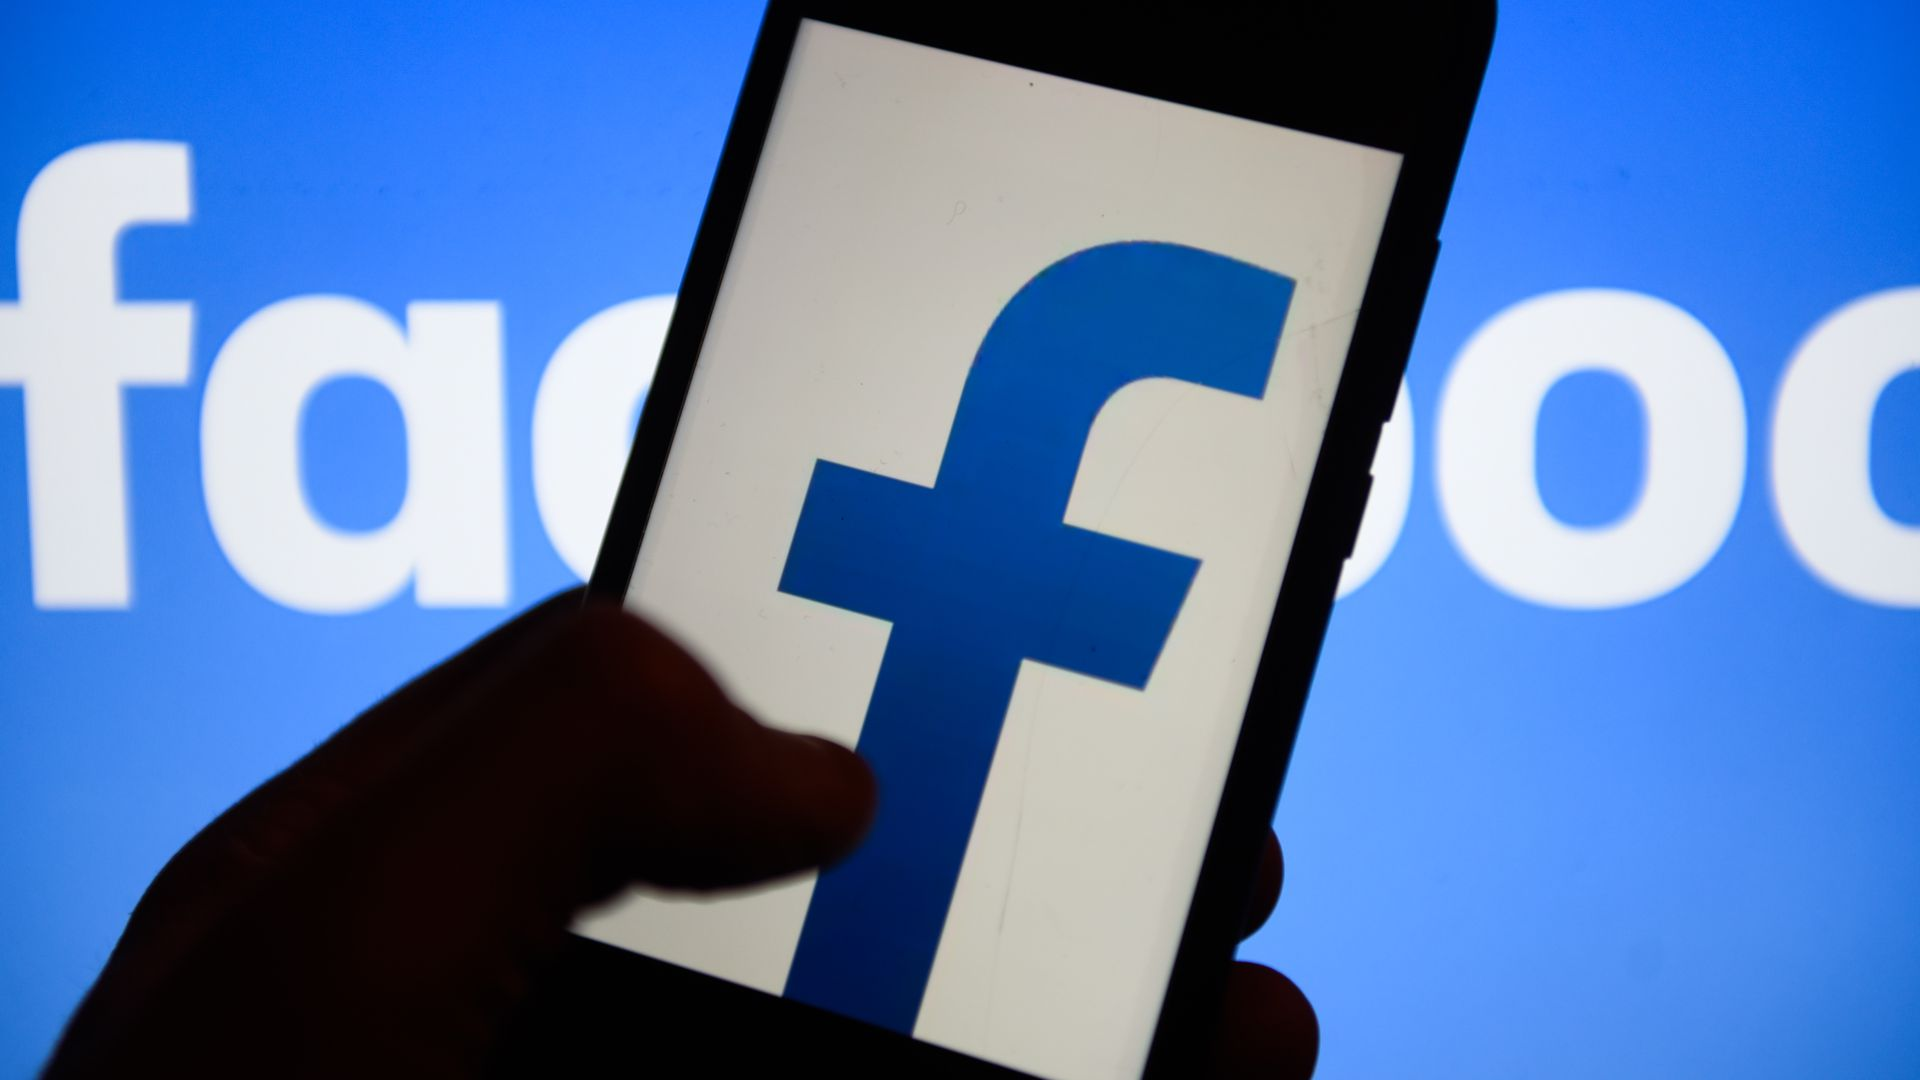 Facebook logo on smartphone screen with shadowy fingers